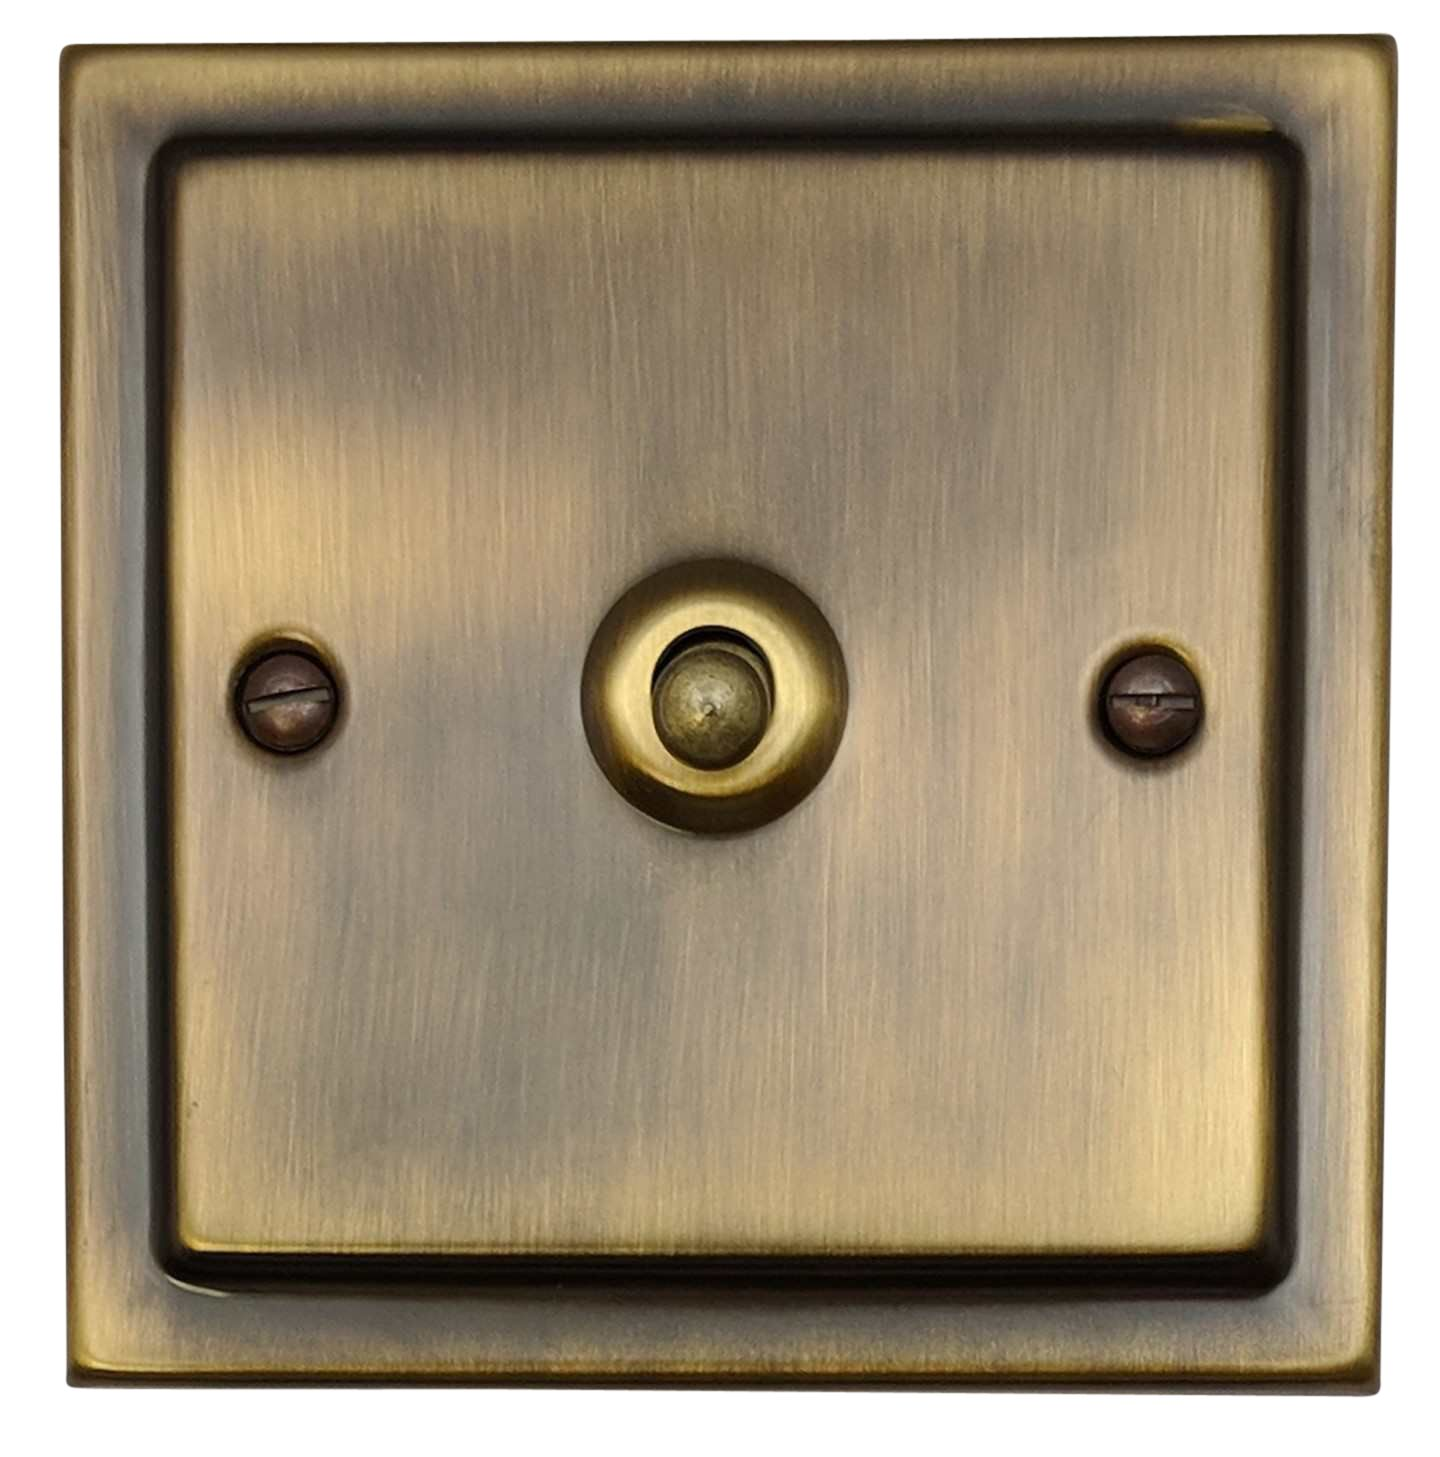 G H Tab281 Trimline Plate Antique Bronze 1 Gang 1 Or 2 Way Toggle Light Switch